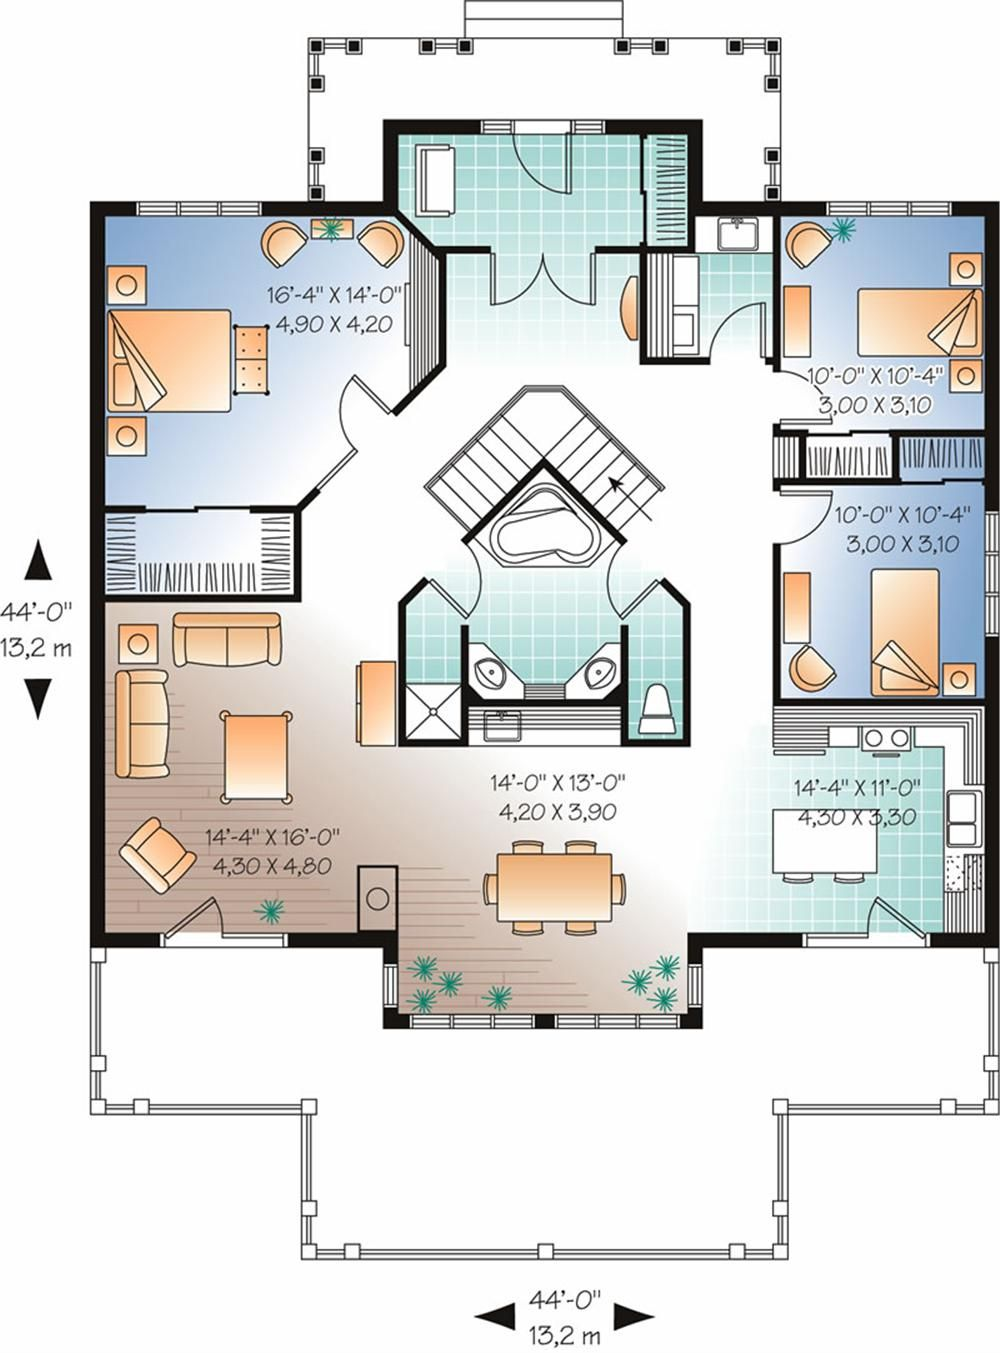 First floor plan sims 3 house plans pinterest house for First floor house plan